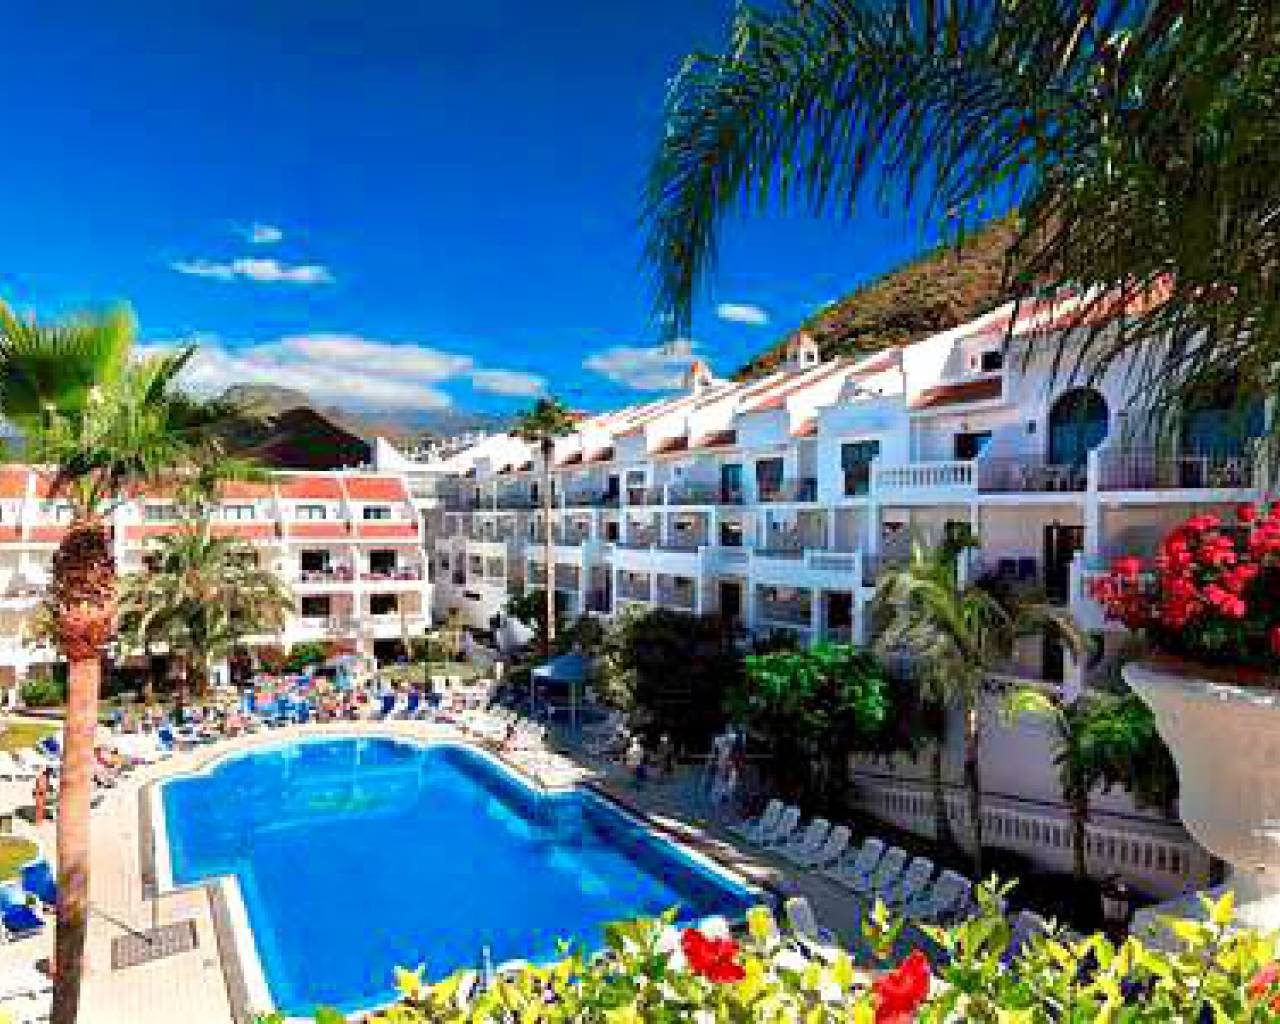 Apartment - Sale - Tenerife - Los Cristianos